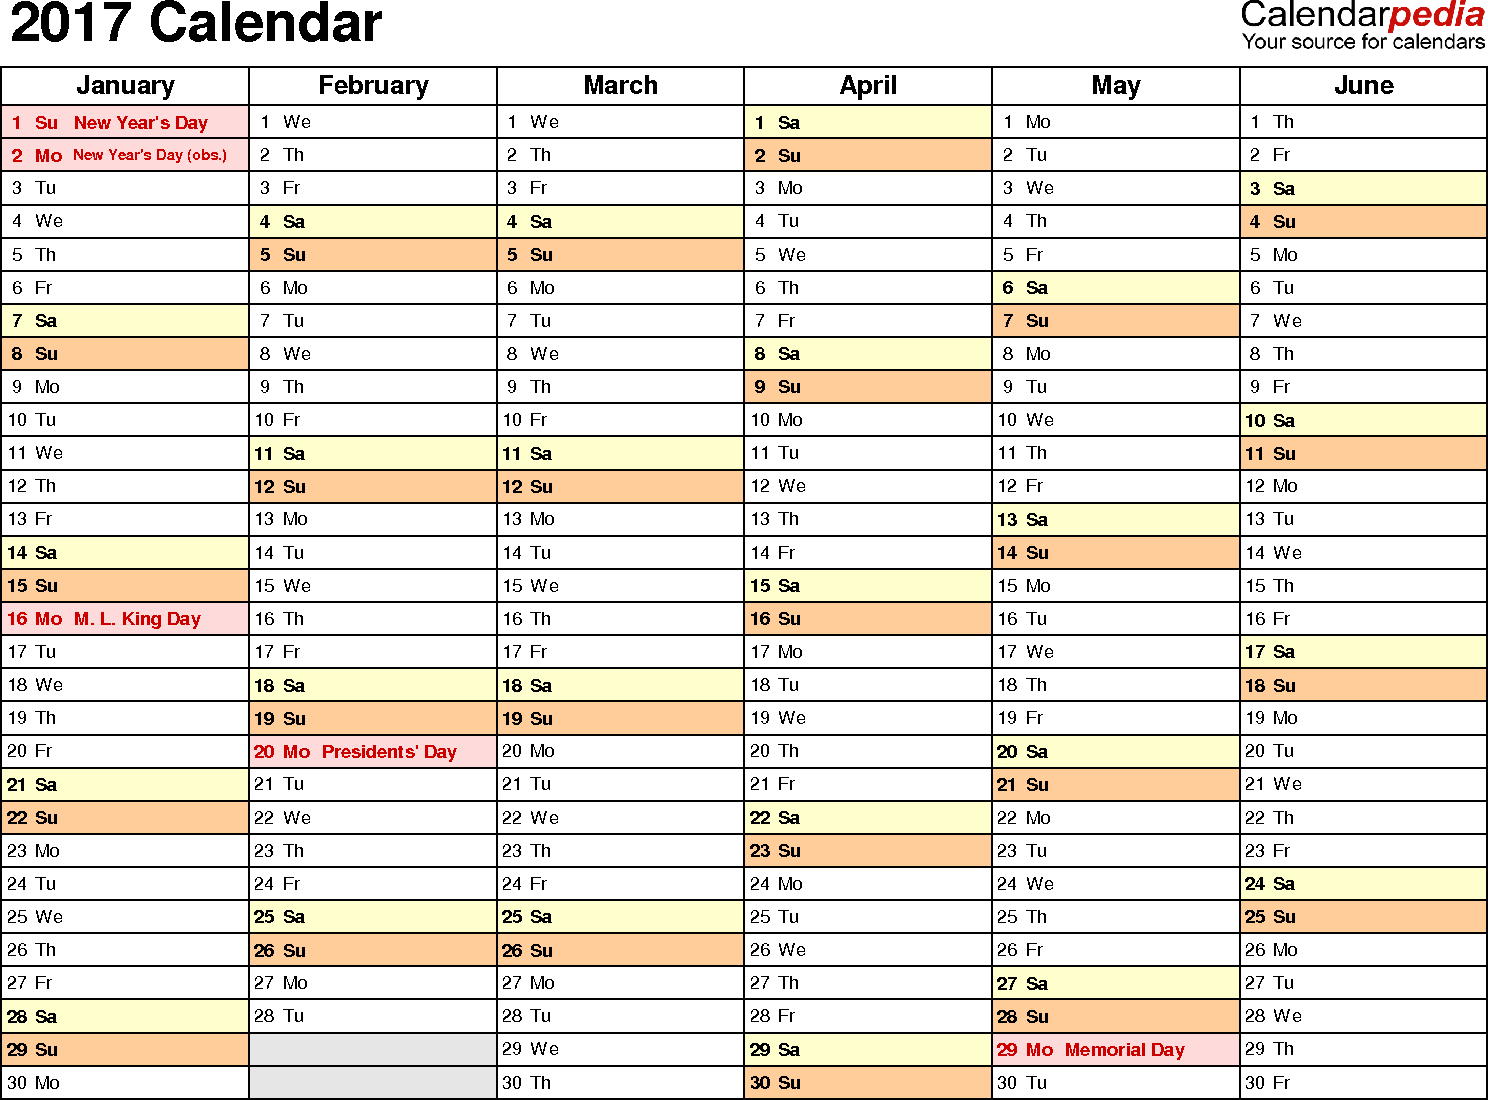 Ediblewildsus  Outstanding  Calendar  Download  Free Printable Excel Templates Xls With Great Template   Calendar For Excel Months Horizontally  Pages Landscape Orientation With Lovely Column Chart In Excel Also Find Outliers In Excel In Addition Ms Excel Shortcuts And New Features In Excel  As Well As Listbox In Excel Additionally How To Do A Excel Spreadsheet From Calendarpediacom With Ediblewildsus  Great  Calendar  Download  Free Printable Excel Templates Xls With Lovely Template   Calendar For Excel Months Horizontally  Pages Landscape Orientation And Outstanding Column Chart In Excel Also Find Outliers In Excel In Addition Ms Excel Shortcuts From Calendarpediacom